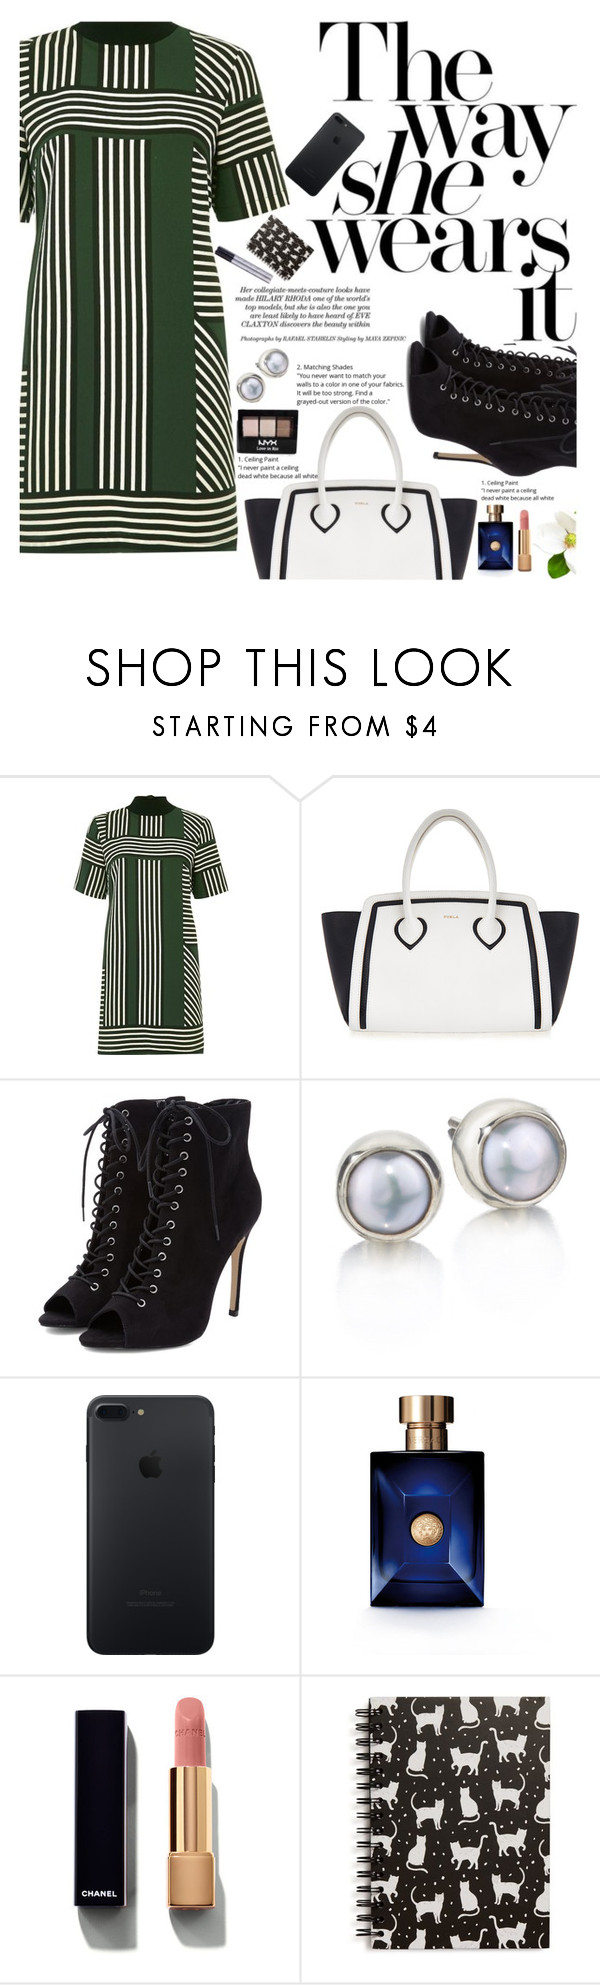 """Untitled #1955"" by anarita11 ❤ liked on Polyvore featuring River Island, Furla, NYX, Versace, Chanel and Tri-coastal Design"